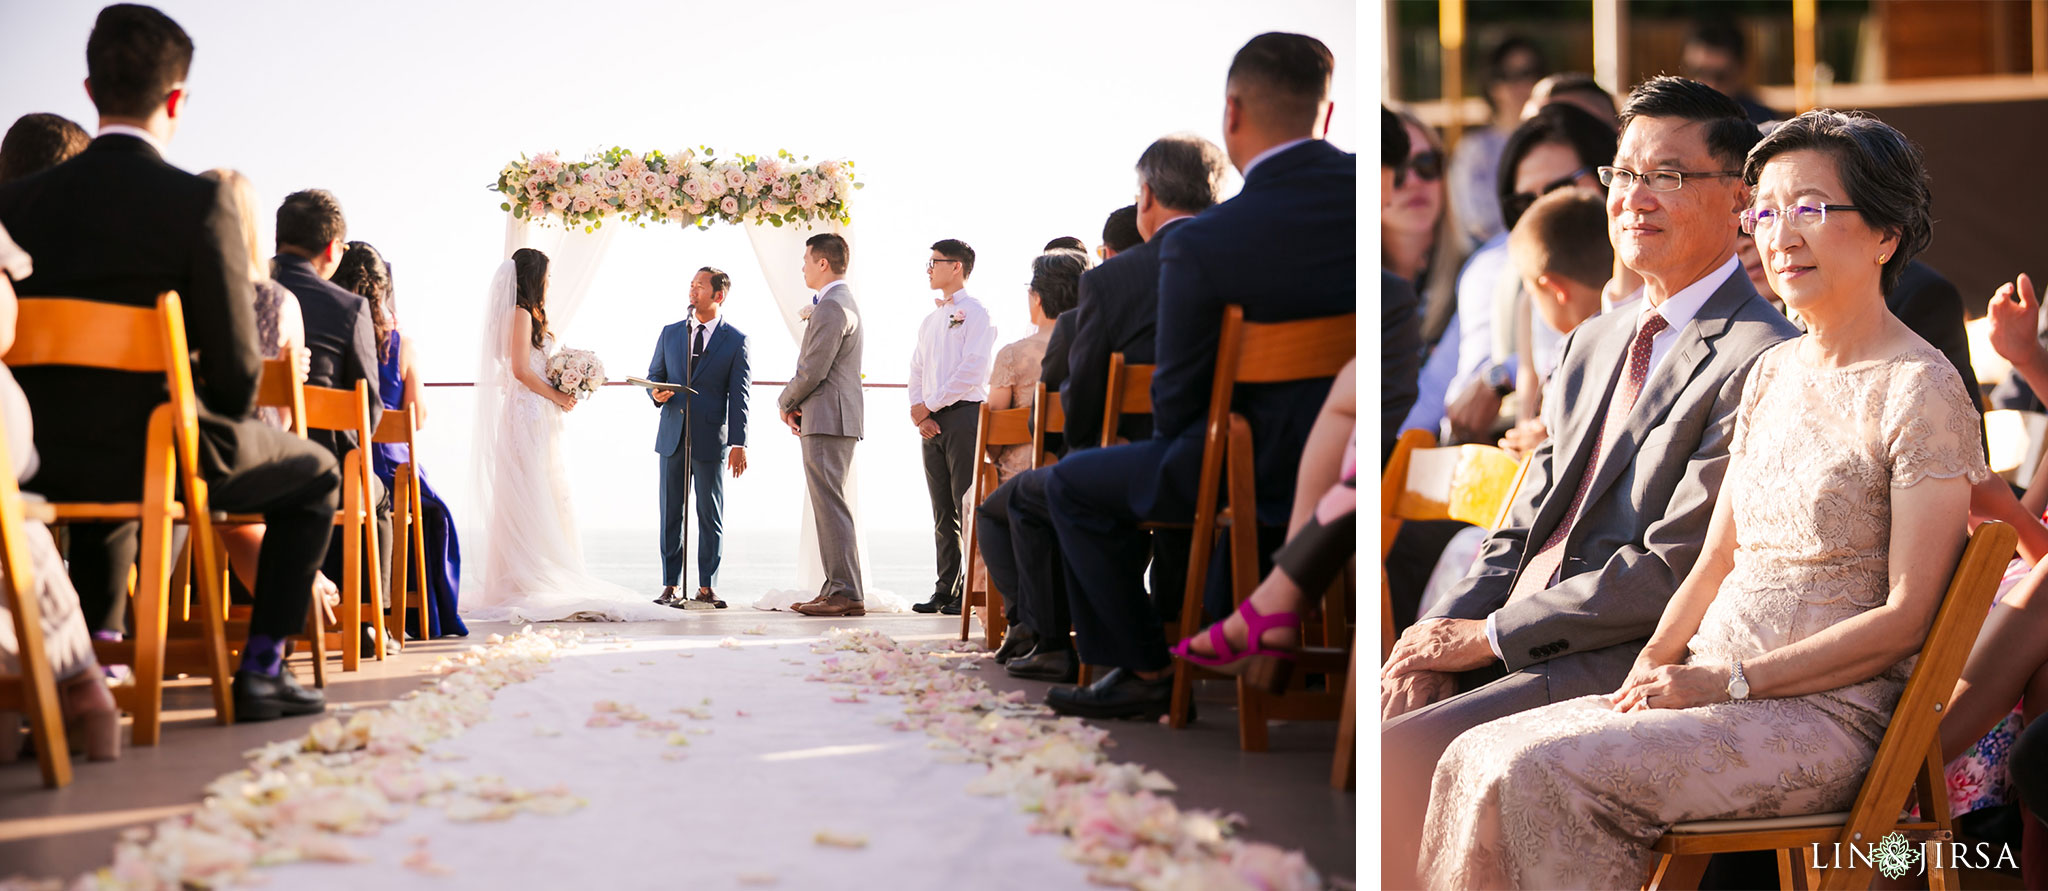 017 surf and sand resort laguna beach wedding photography